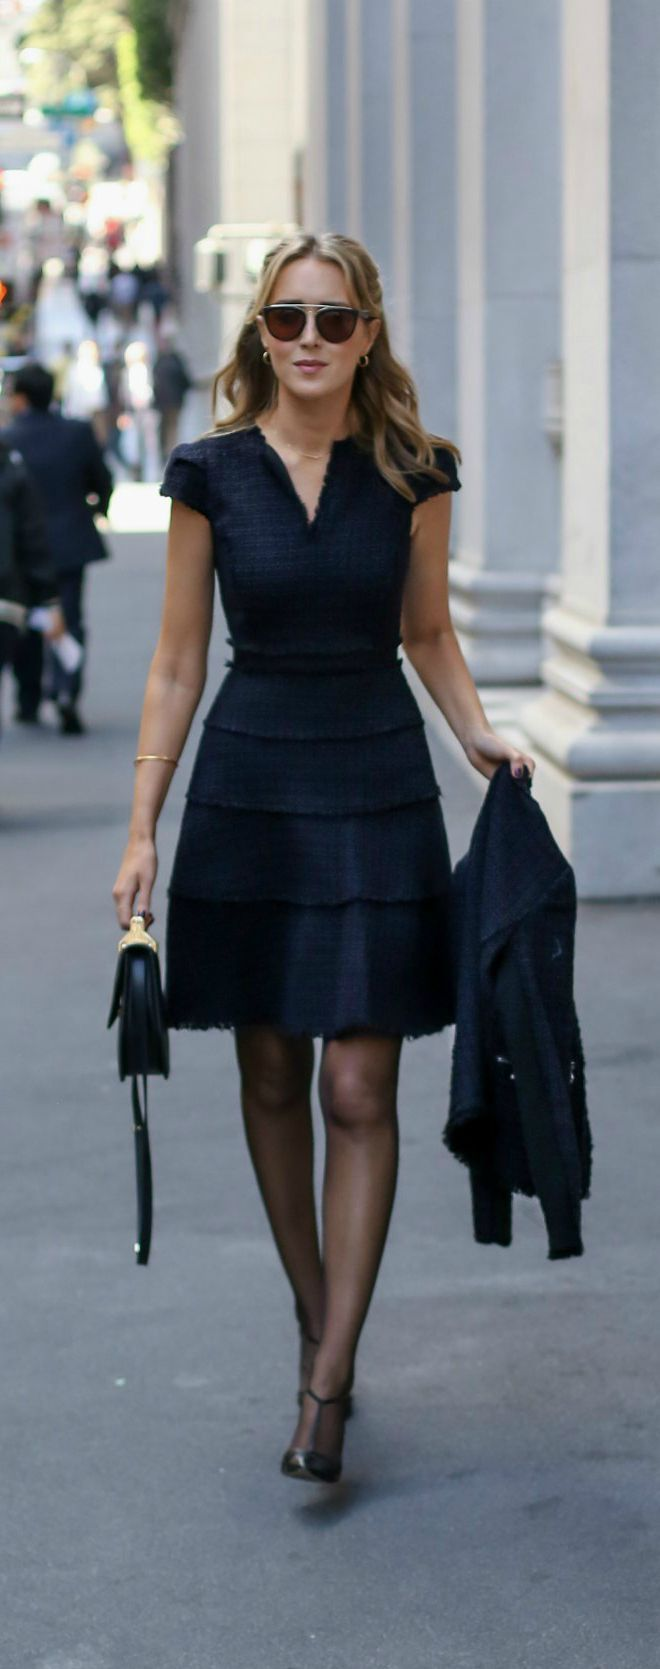 Black and navy tweed fit and flare short sleeve dress with coordinating suit jac…